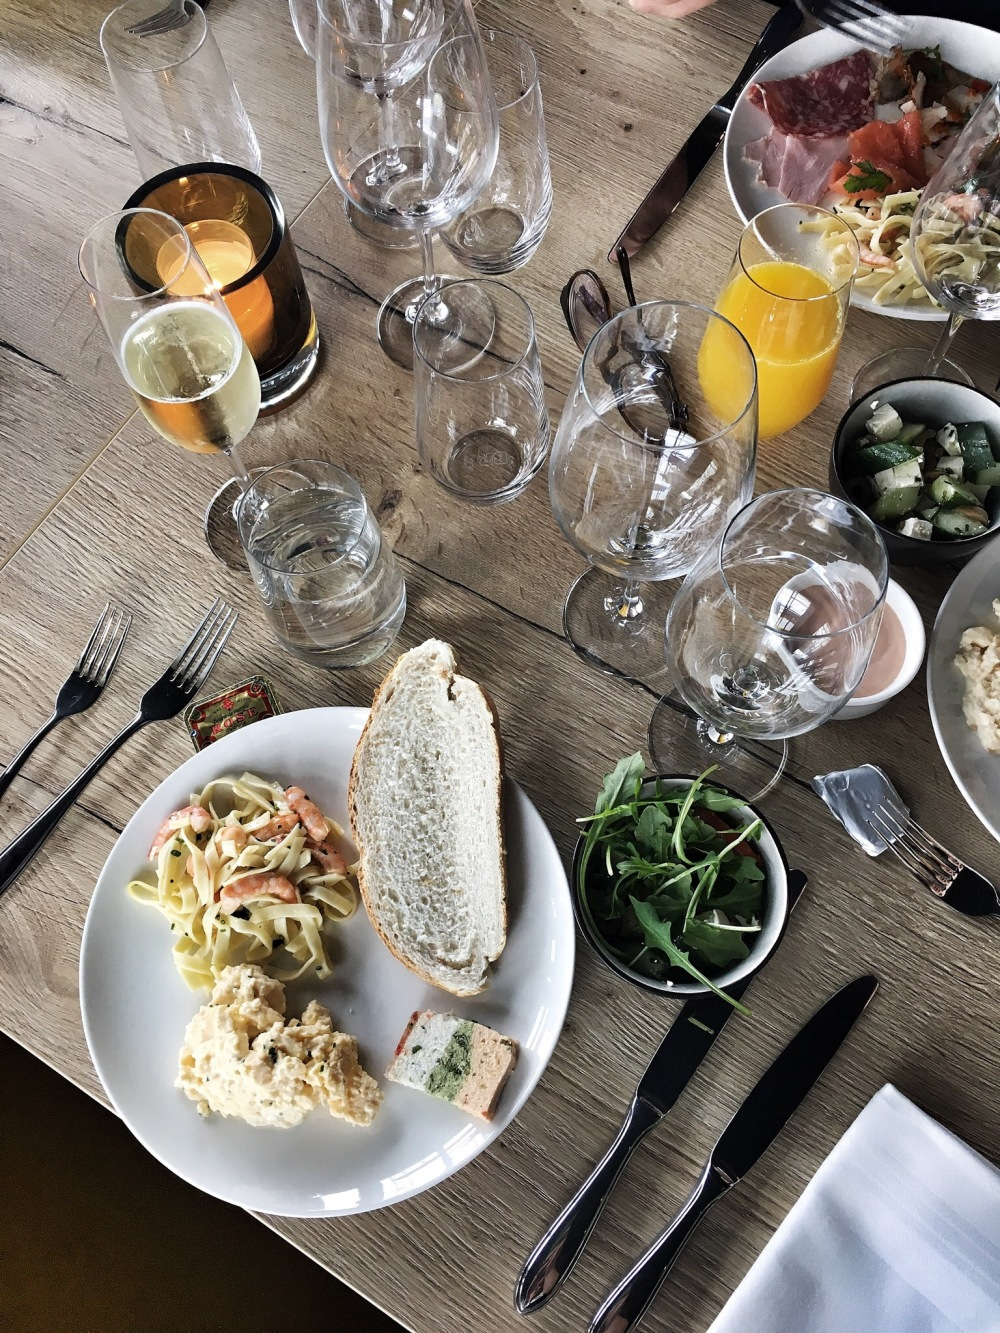 vandervalk,arlon,luxembourg,restaurant,luxe,welcome,foodblogger,belgianblogger,hfaime,food,brunch,luxueux,blogger,blogmode,mode,tendance,fashion,style,street style